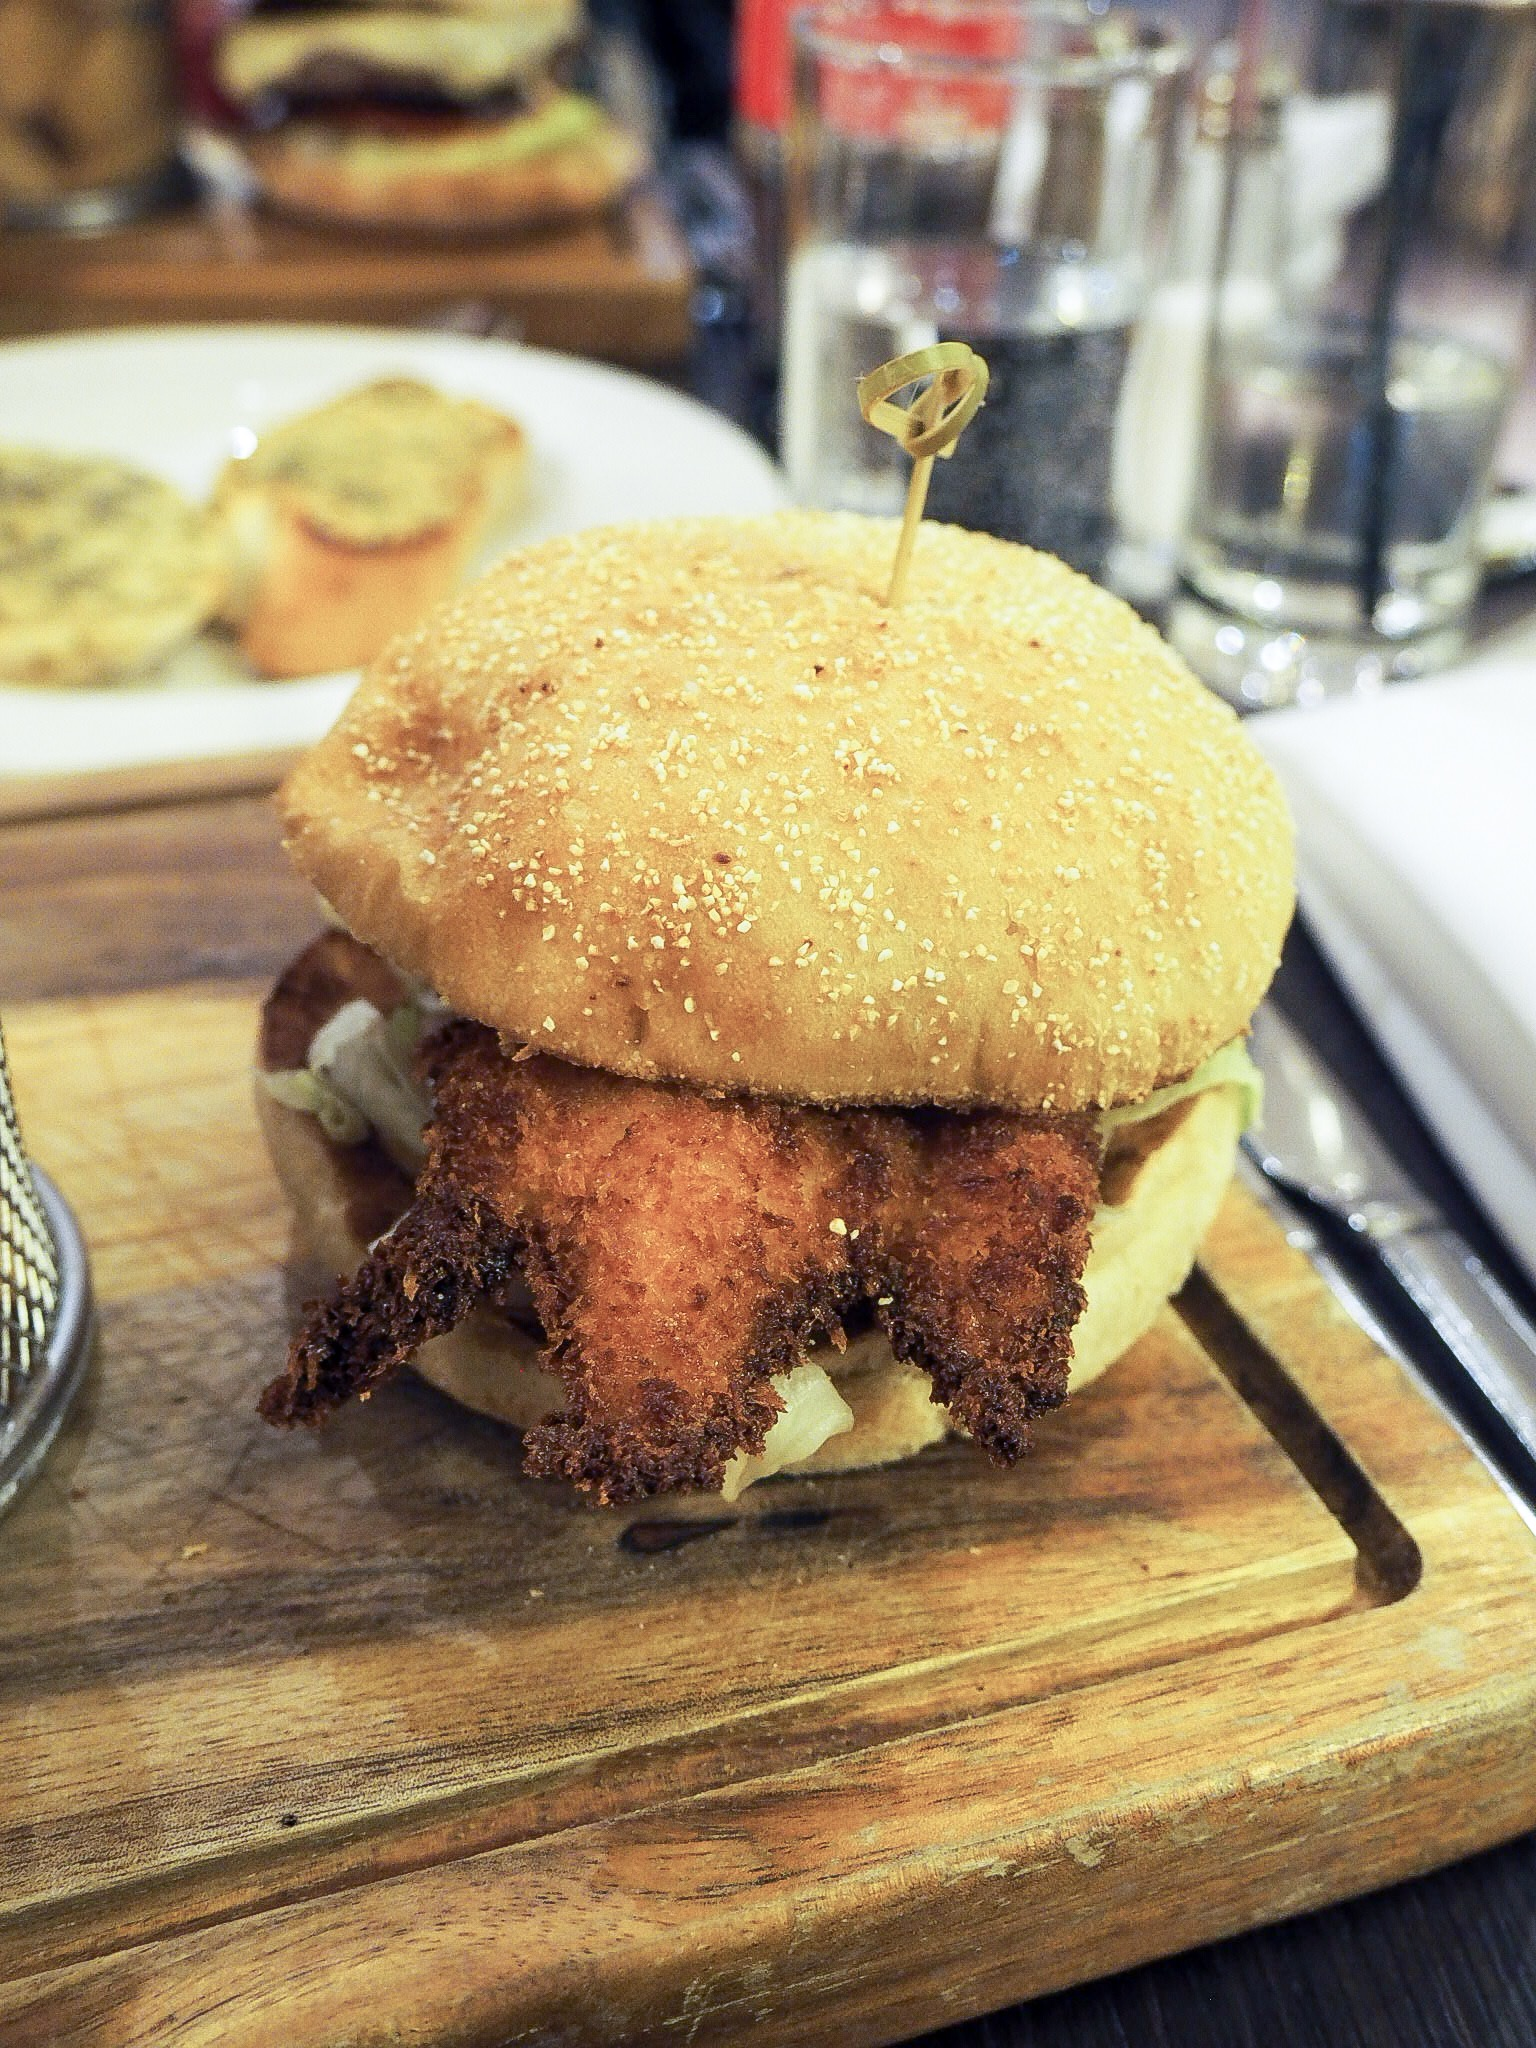 Crowne Plaza Resort Colchester katsu curry burger